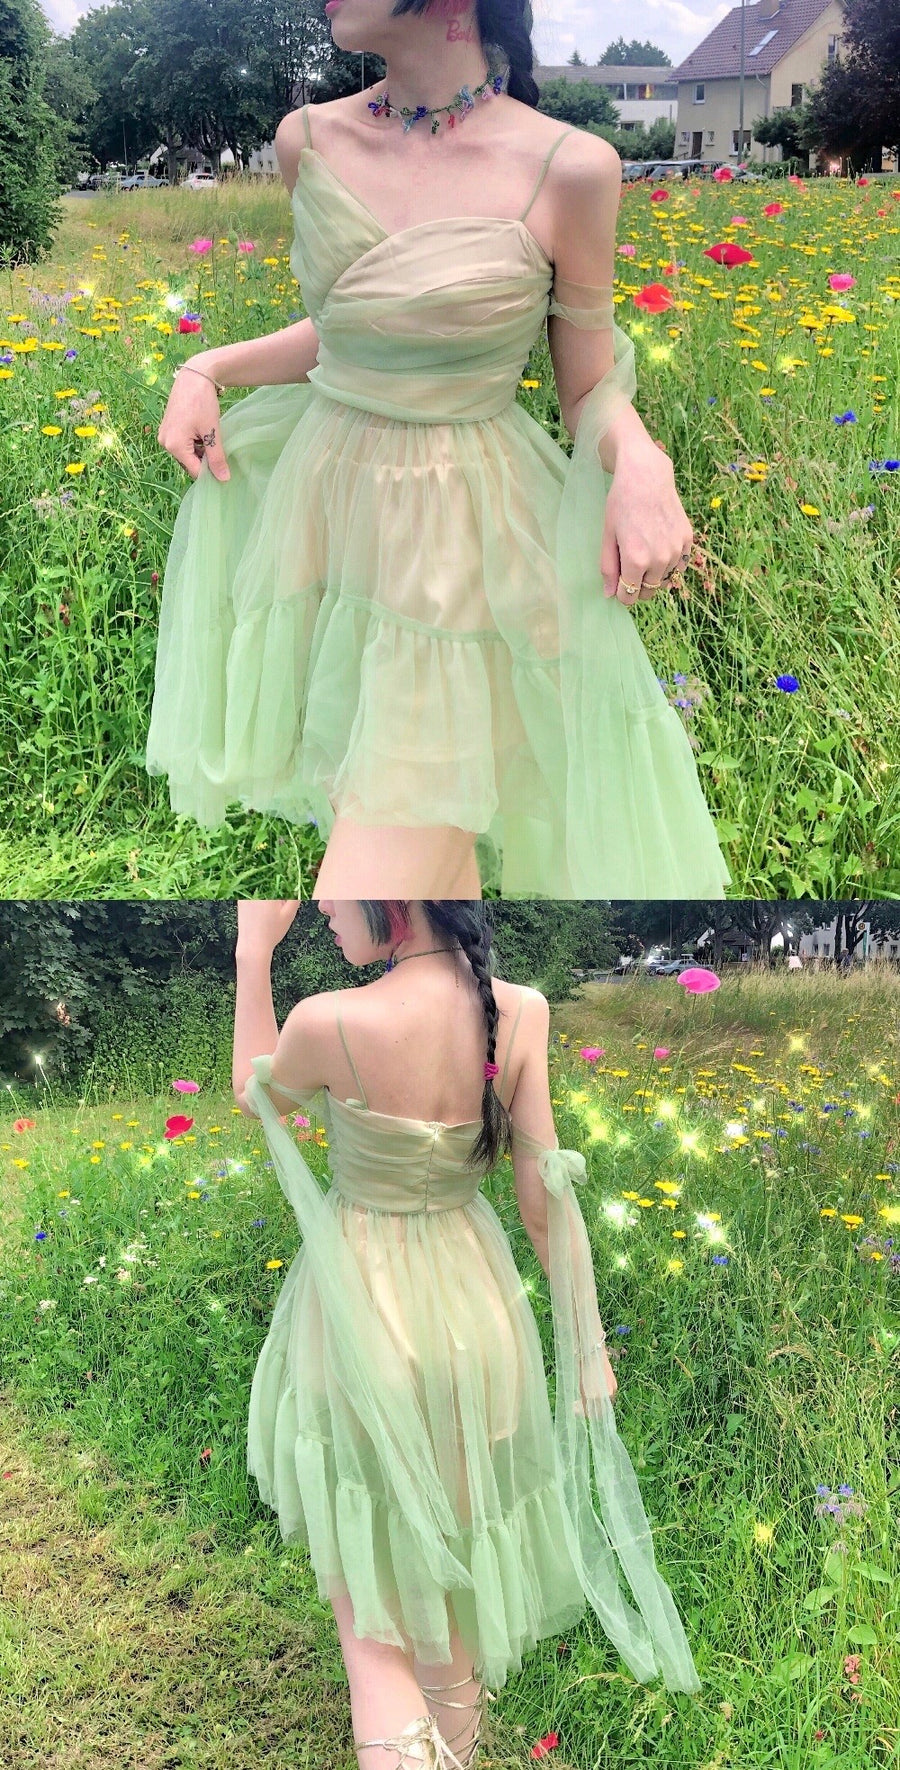 [Premium Selected] Spring Fireflies Tinker Bell Dream Dress - Peiliee Shop